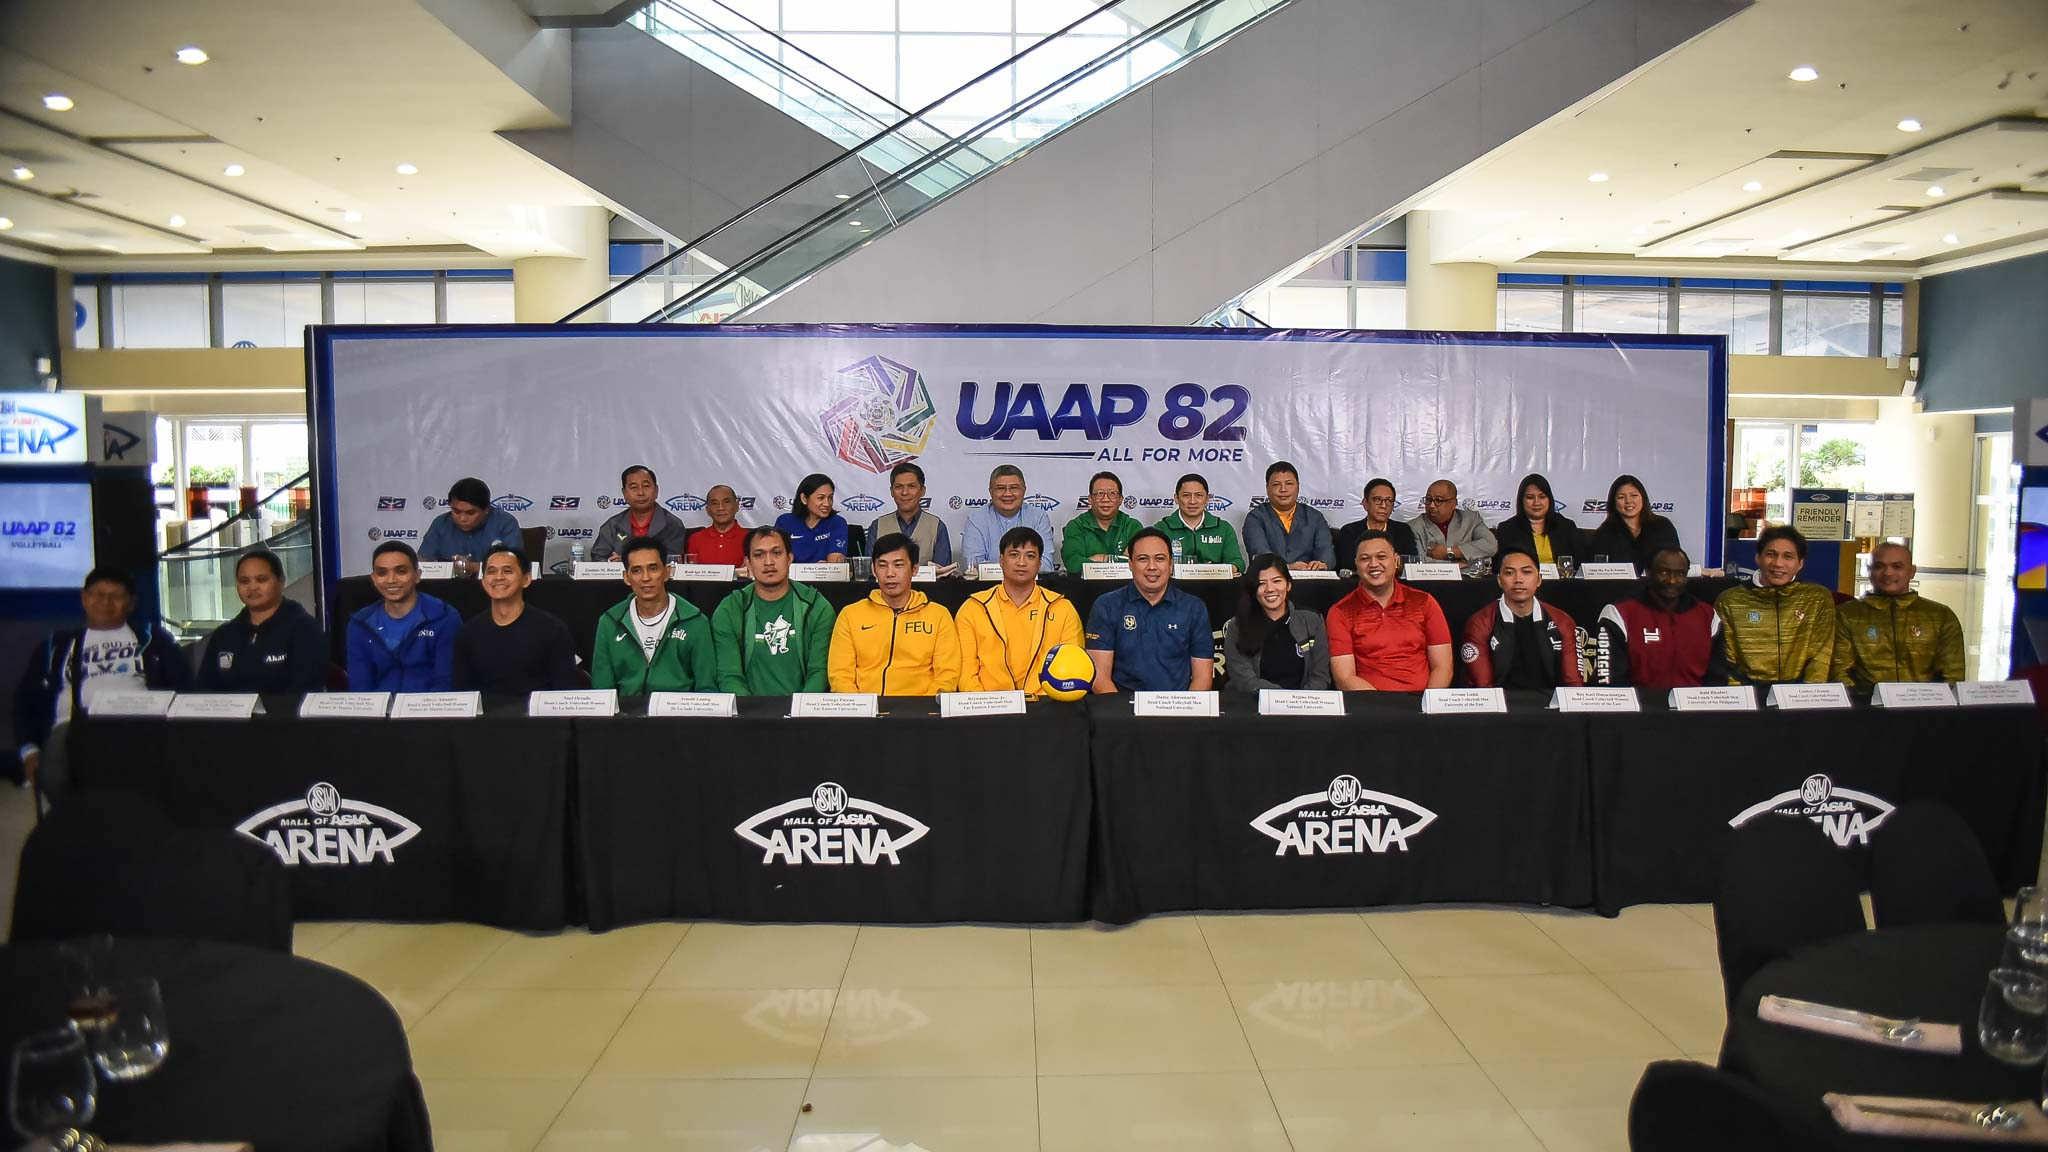 Tiebreaker Times UAAP cancels current format for Season 82 Collegiate tournaments 3x3 Basketball ADMU AdU Baseball DLSU FEU Football News NU Softball Tennis Track & Field UAAP UE UP UST Volleyball  UST Women's Volleyball UST Men's Volleyball UST Men's Football UP Women's Volleyball UP Women's Football UP Men's Volleyball UP Men's Football UE Women's Volleyball UE Men's Volleyball UE Men's Football UAAP Season 82 Women's Volleyball UAAP Season 82 Women's Tennis uaap season 82 women's football UAAP Season 82 Softball UAAP Season 82 Seniors Baseball uaap season 82 men's volleyball UAAP Season 82 Men's Tennis UAAP Season 82 Men's Football UAAP Season 82 Athletics UAAP Season 82 3X3 Basketball UAAP Season 82 NU Women's Volleyball NU Women's Football NU Men's Volleyball NU Men's Football FEU Women's Volleyball FEU Women's Football FEU Men's Volleyball FEU Men's Football DLSU Women's Volleyball DLSU Women's Football DLSU Men's Volleyball DLSU Men's Football Coronavirus Pandemic Ateneo Women's Volleyball Ateneo Women's Football Ateneo Men's Volleyball Ateneo Men's Football Adamson Women's Volleyball Adamson Men's Volleyball Adamson Men's Football